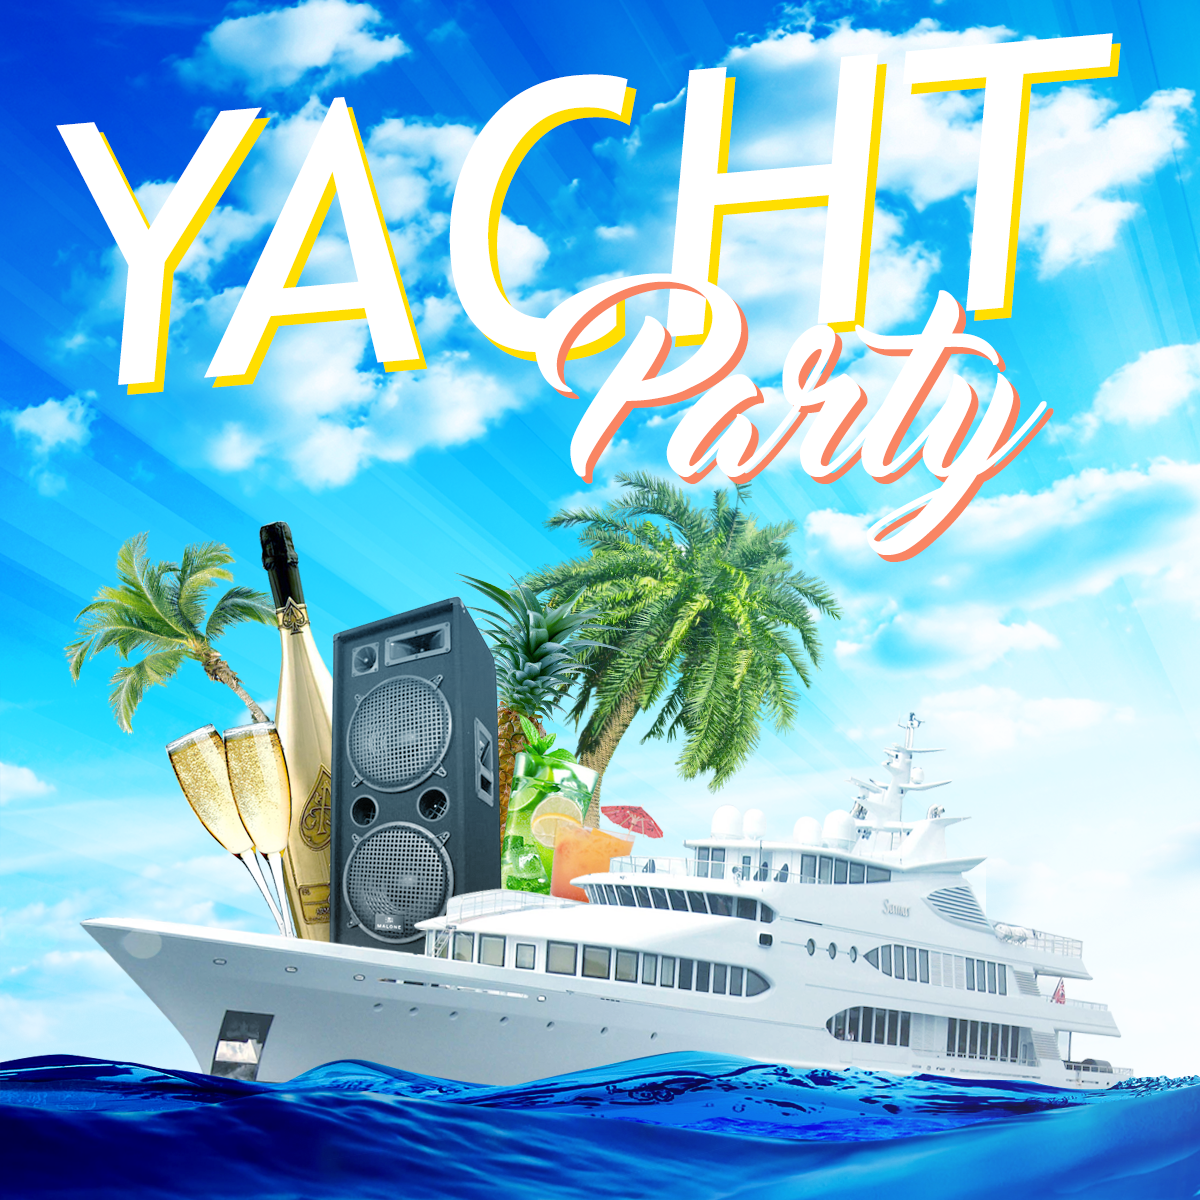 Yachts Package (Corporate Event, Birthday, Anniversary)